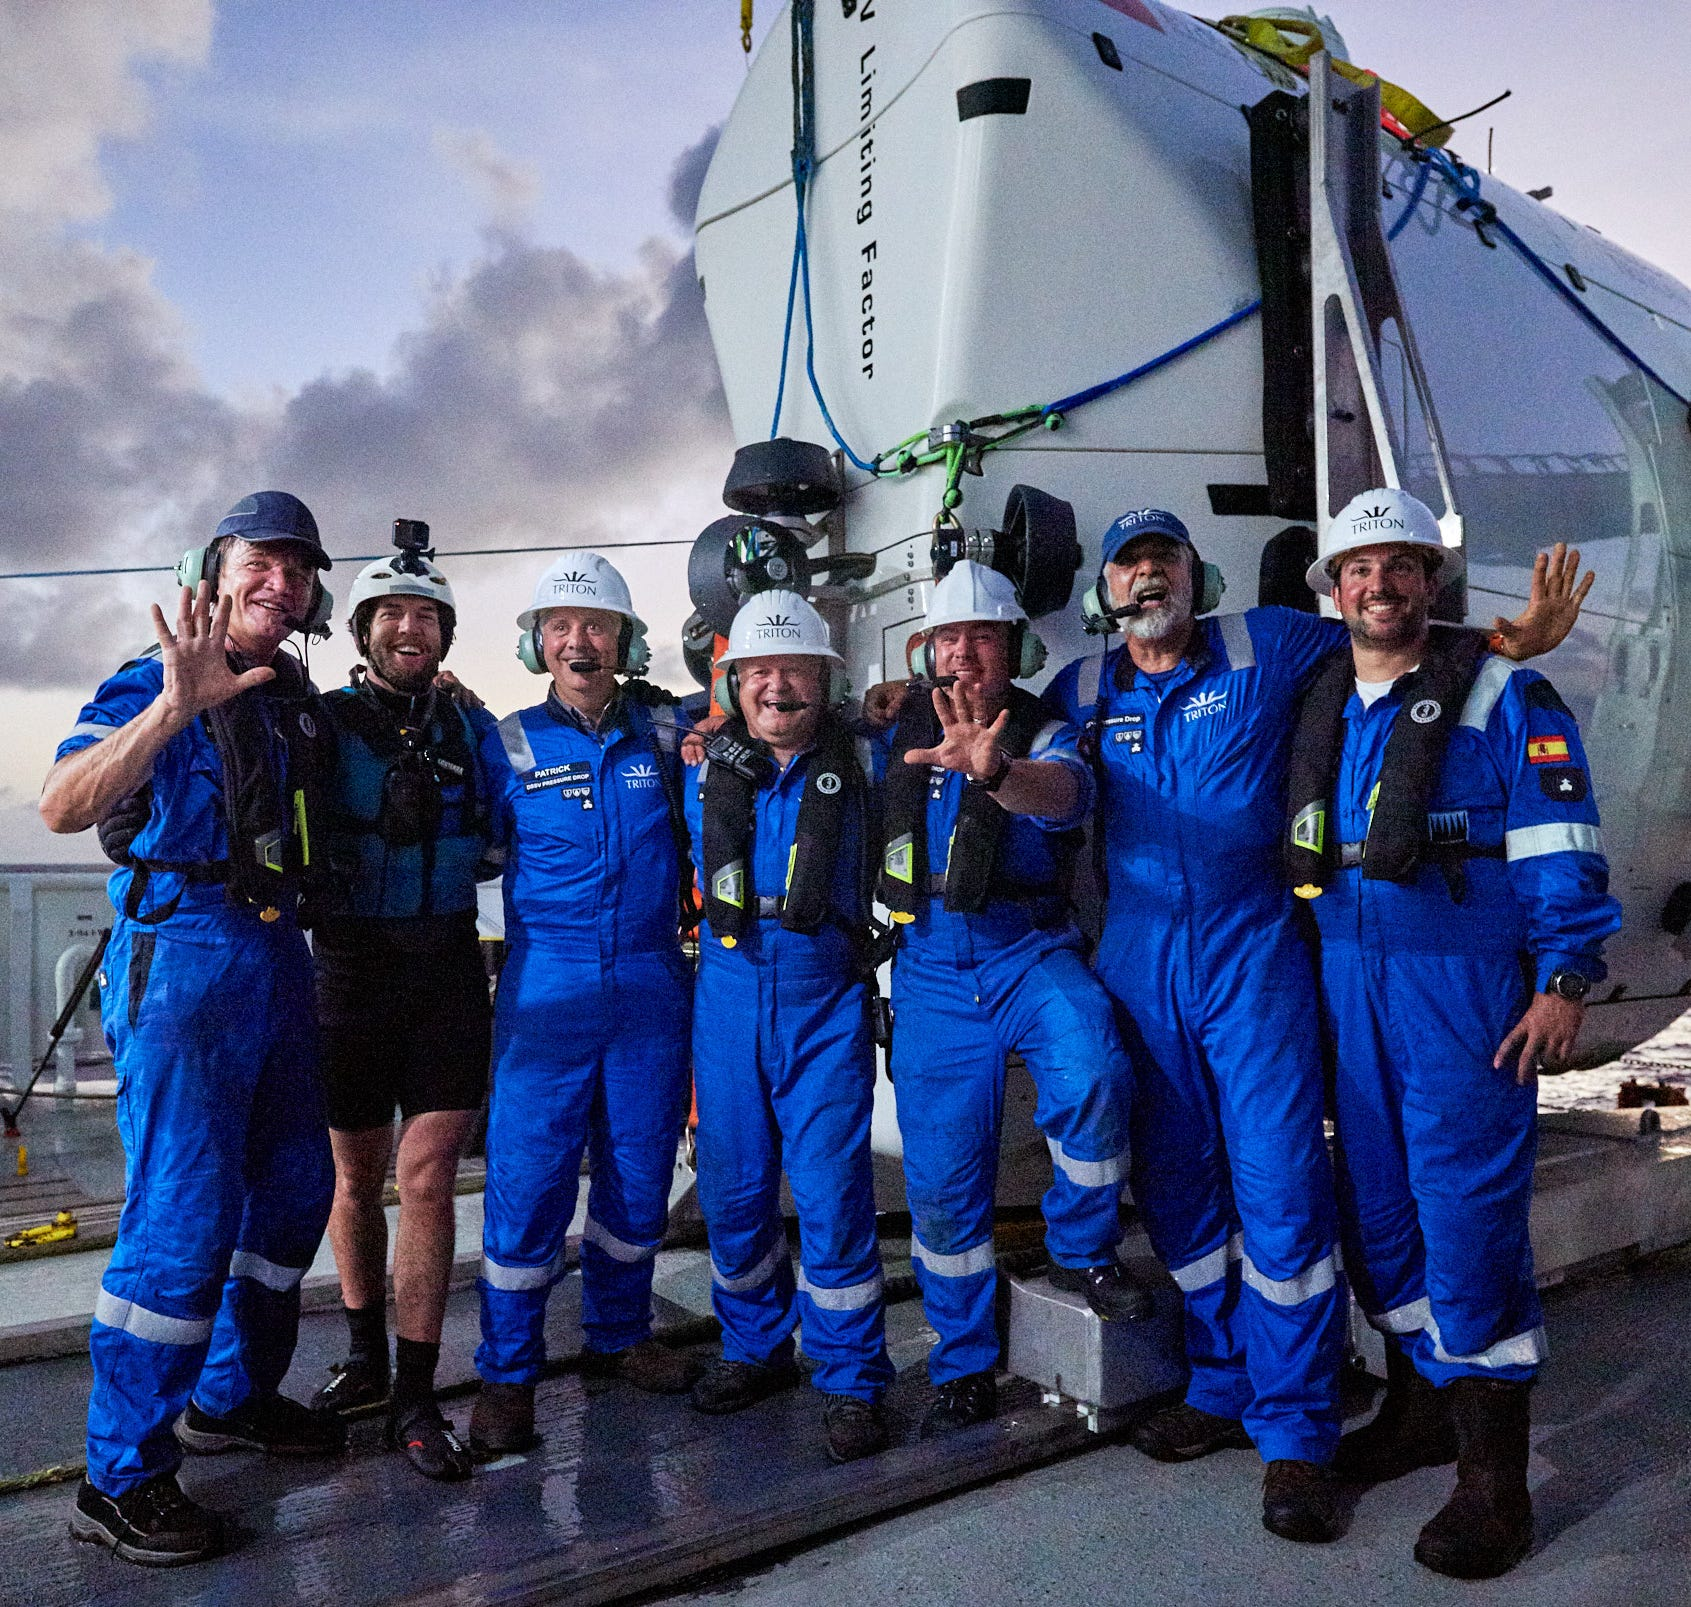 Left to right, Steve Chappelle, Tim Macdonald, Patrick Lahey, Kelvin Magee, Shane Eigler, Frank Lombardo and Hector Salvador, all crew members of Triton Submarines in Sebastian, celebrate DSV Limiting Factor's fifth dive into the depths of the Mariana Trench near Guam in the Pacific Ocean.